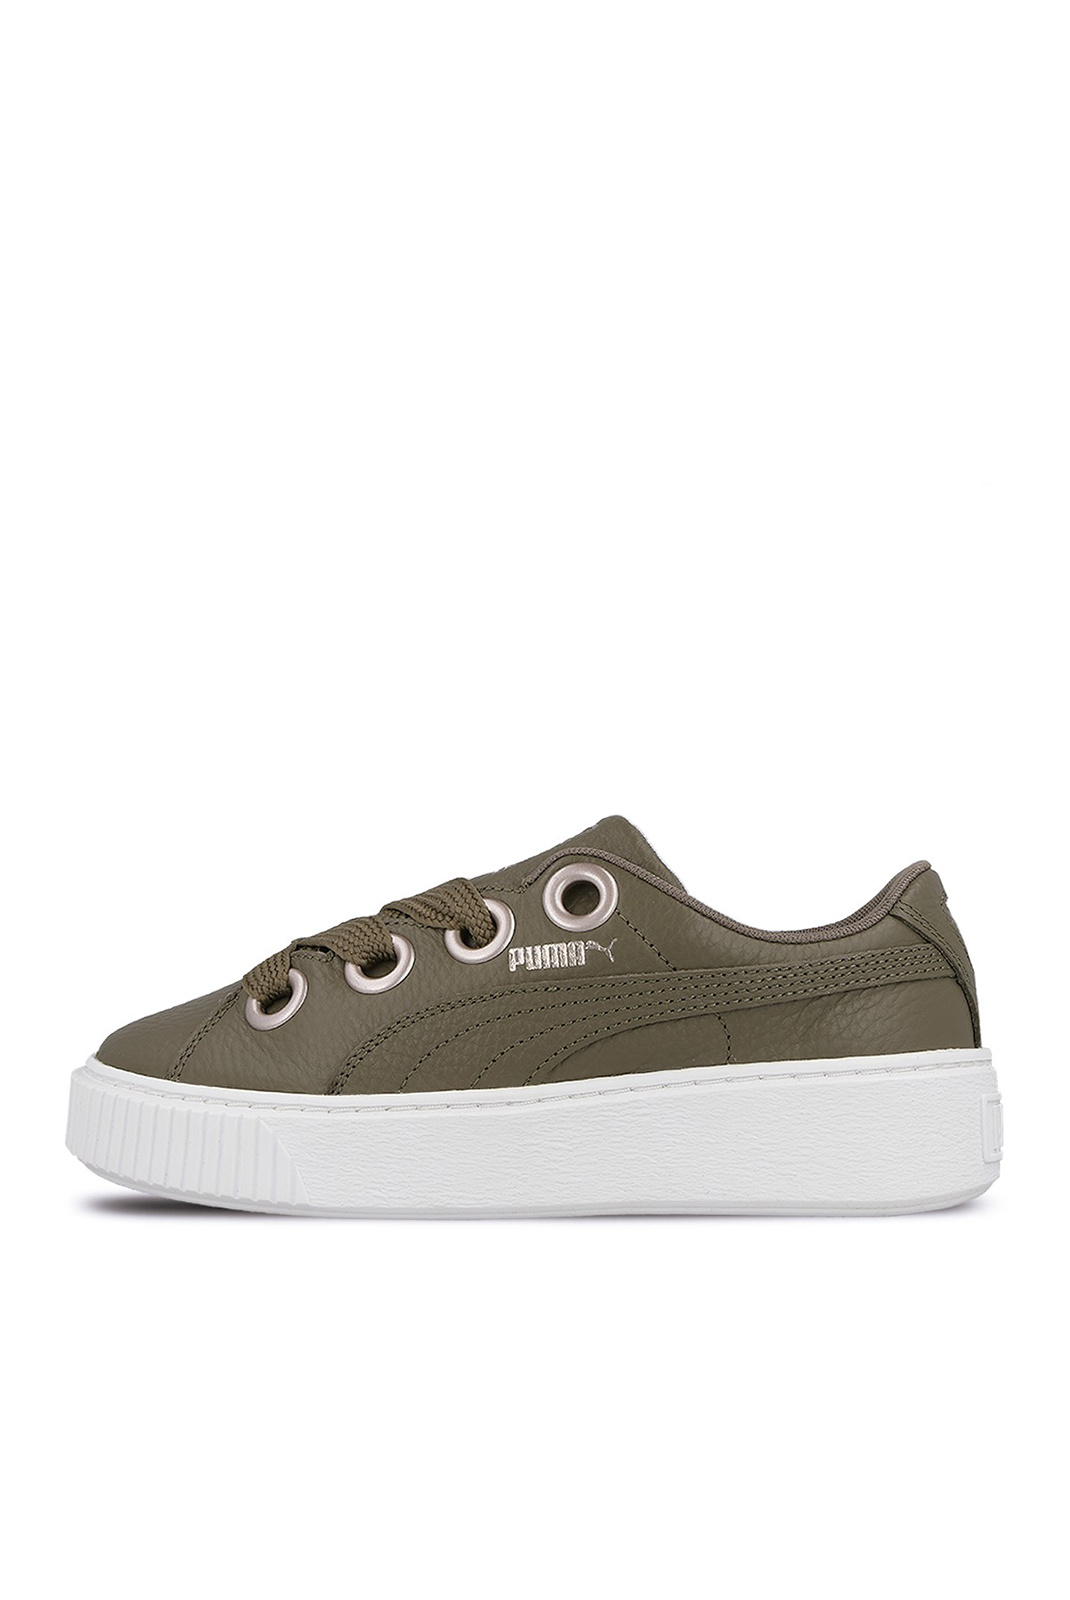 Baskets / Sneakers  Puma 366460 01 BUNGEE CORD